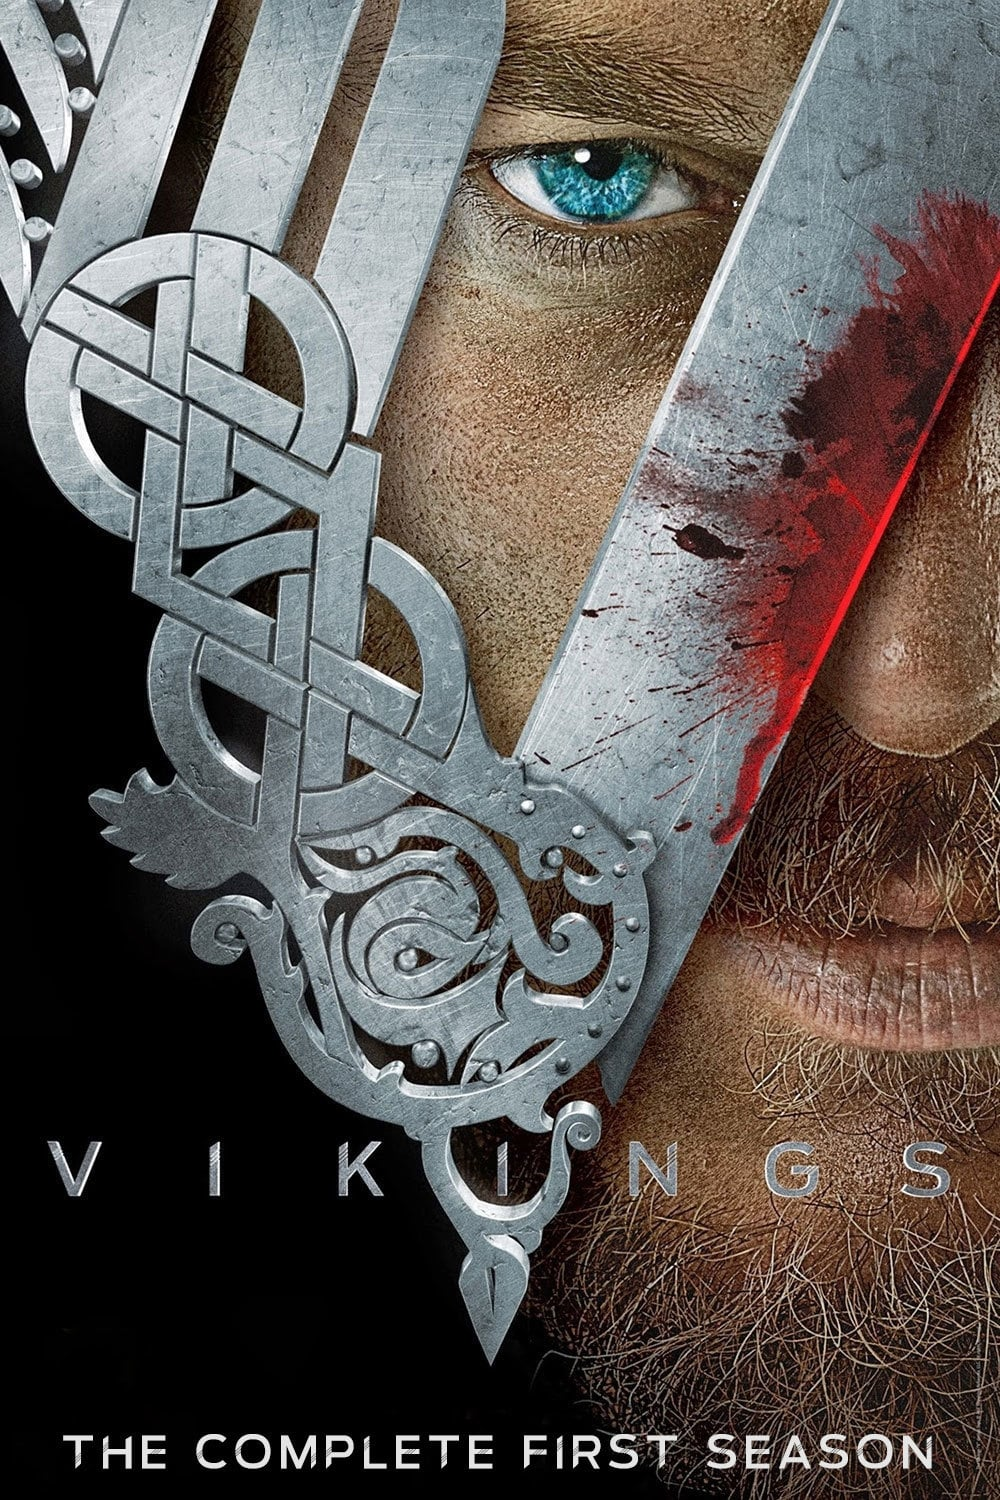 http://homesofsurrey.com/vikings-1a-temporada-2013-bdrip-bluray-720p-dublado-torrent/